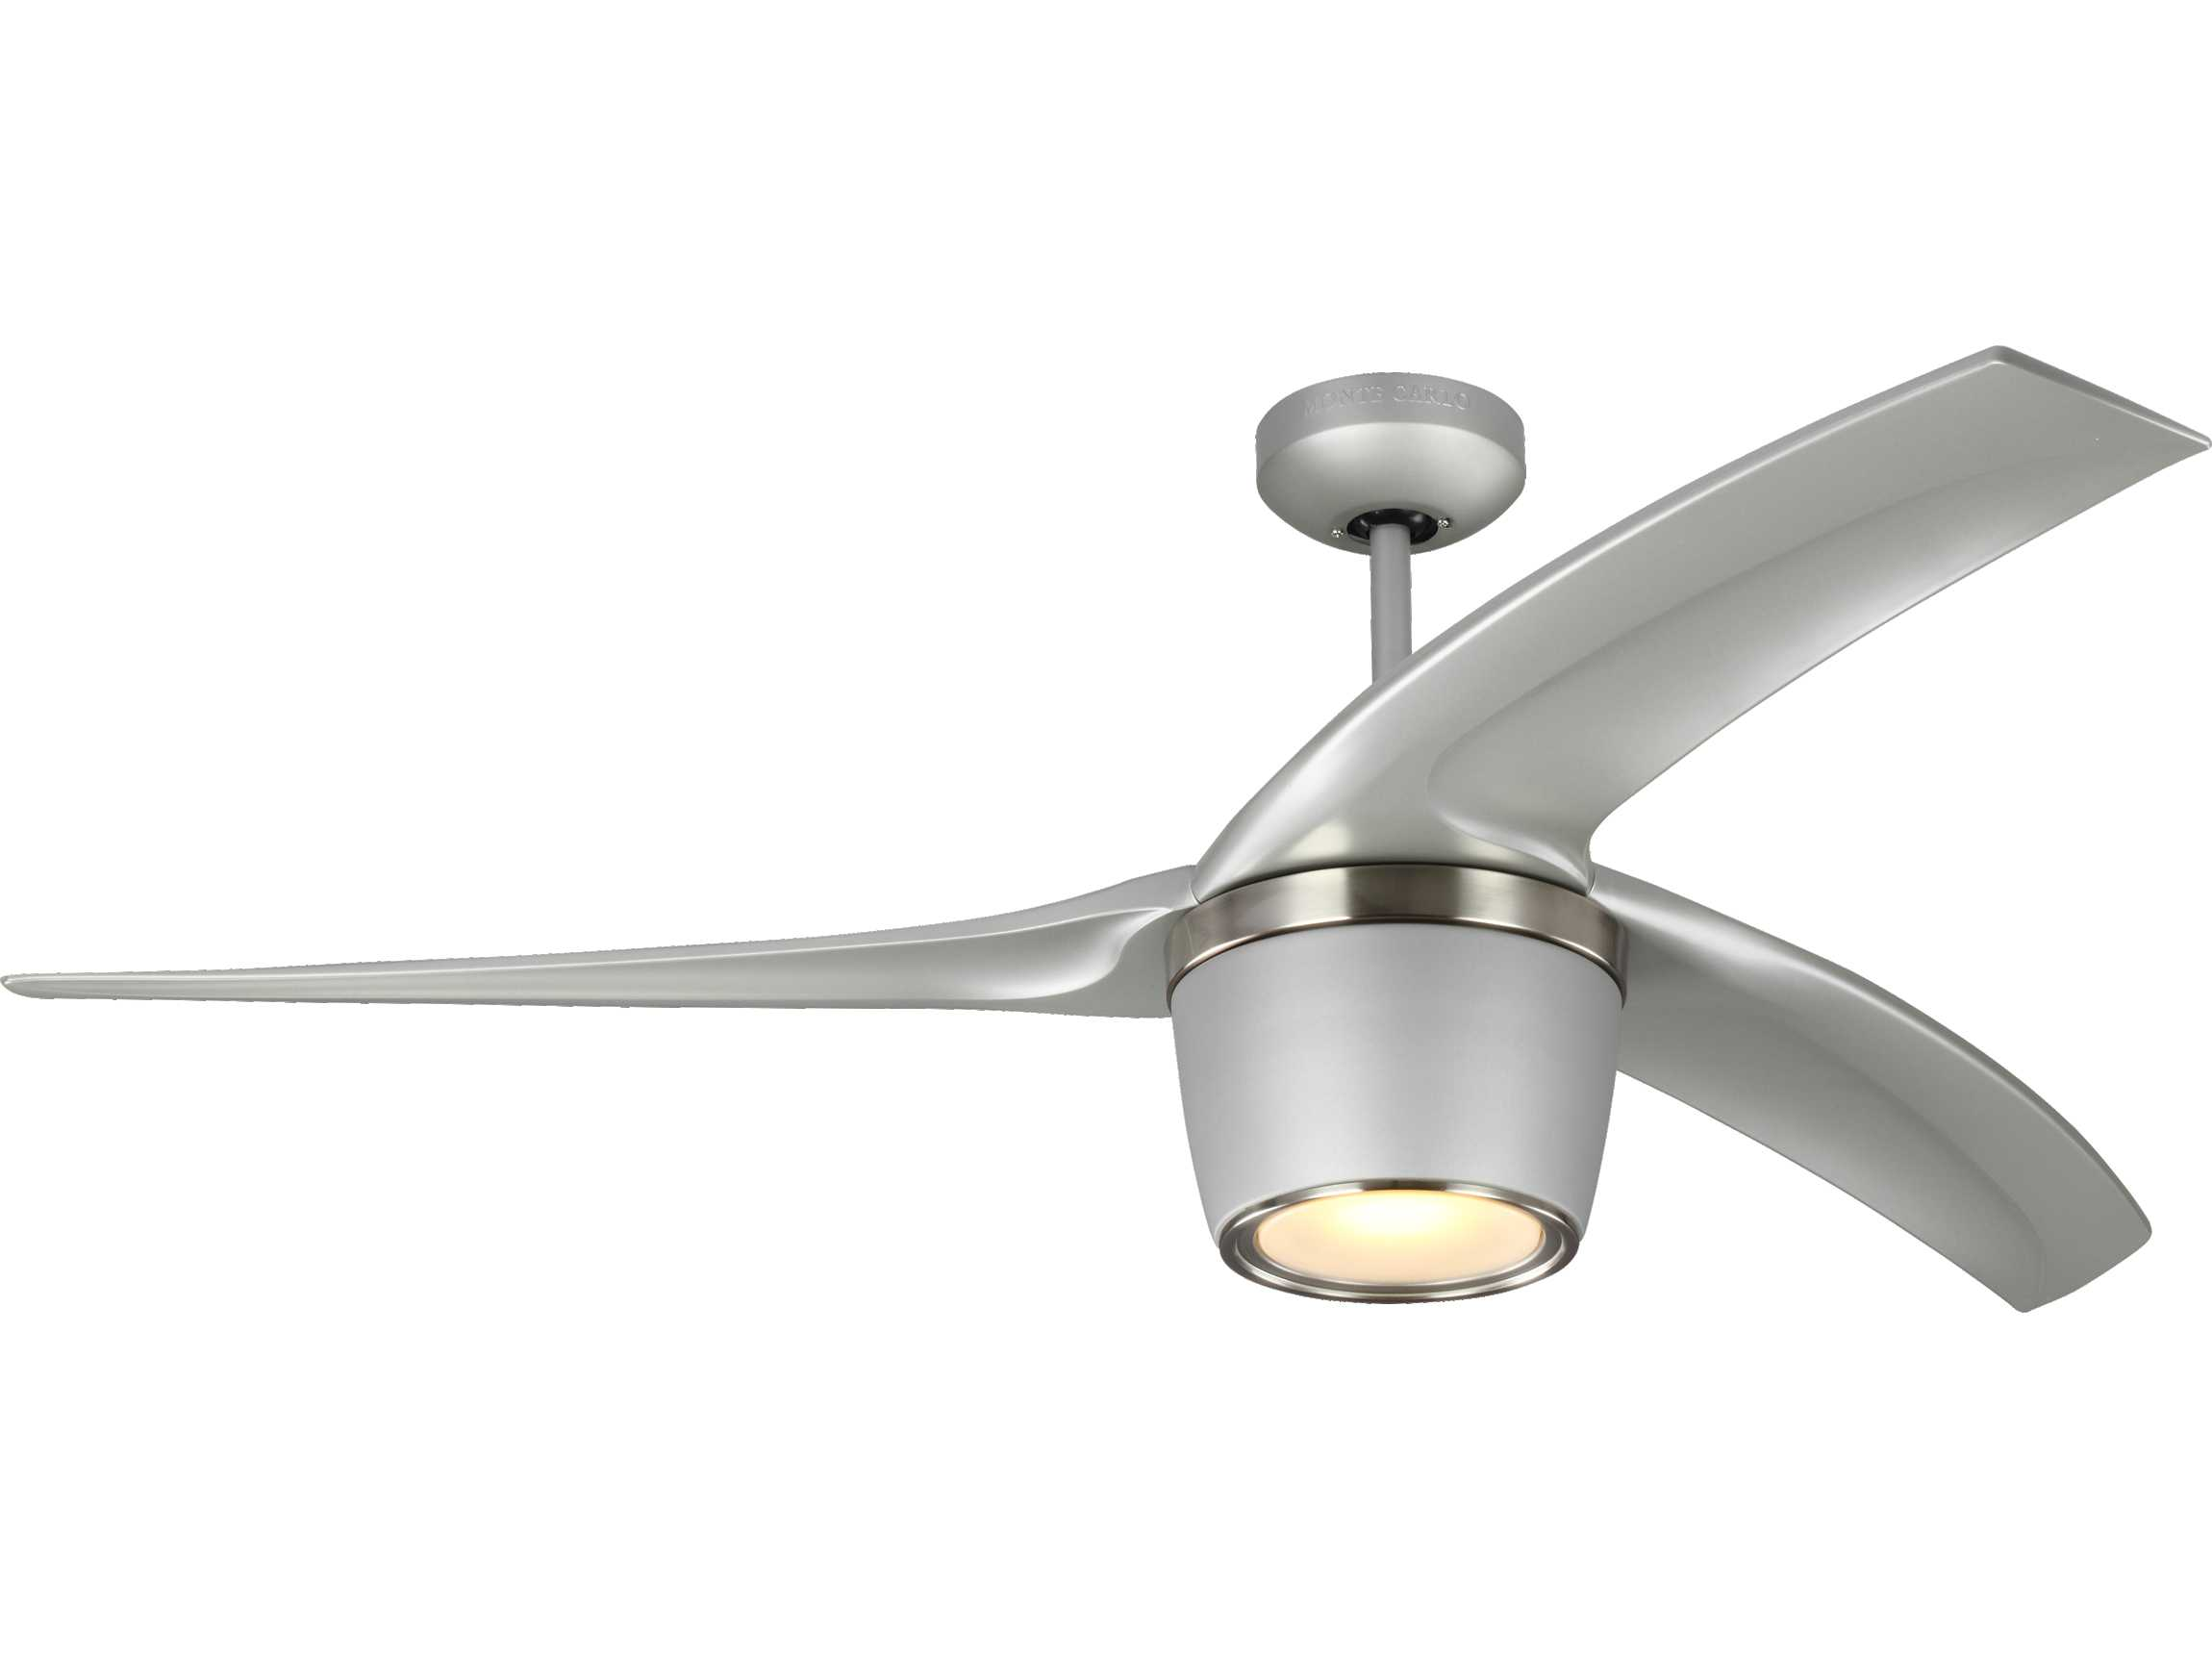 Monte Carlo Fans Skylon Grey 56 Wide Indoor Outdoor Ceiling Fan With Led